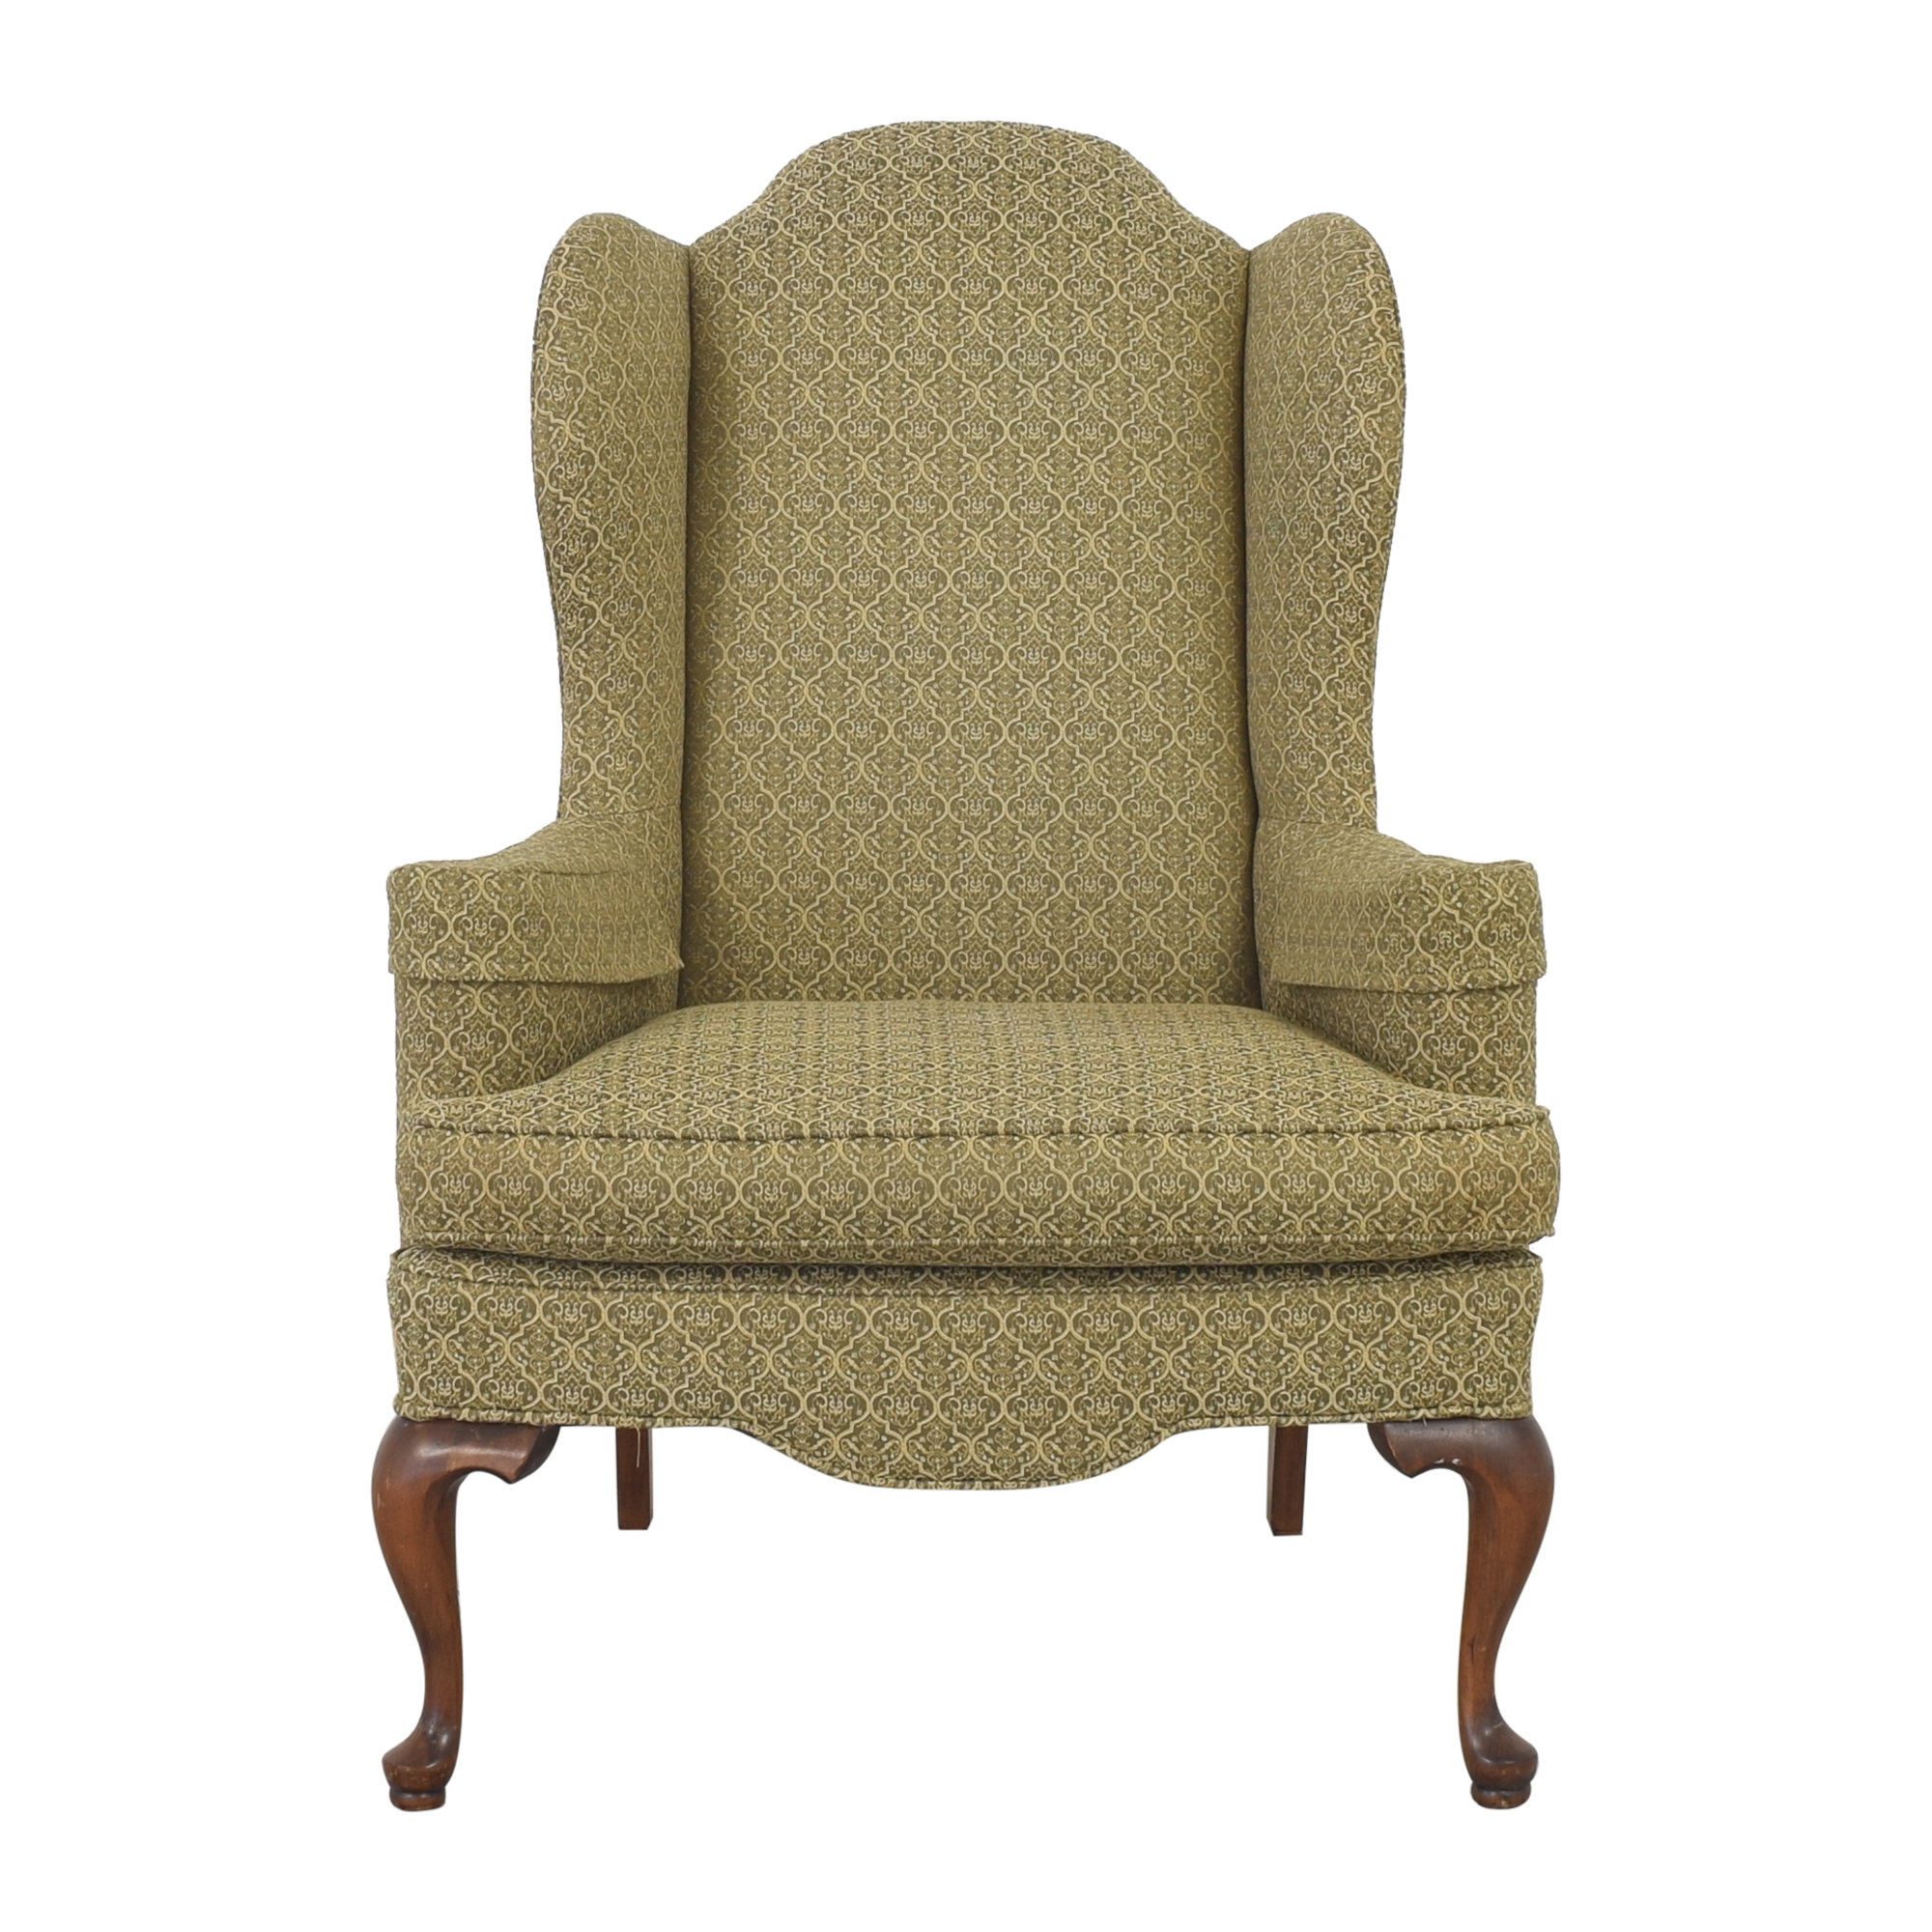 Ethan Allen Queen Anne Wing Chair / Accent Chairs